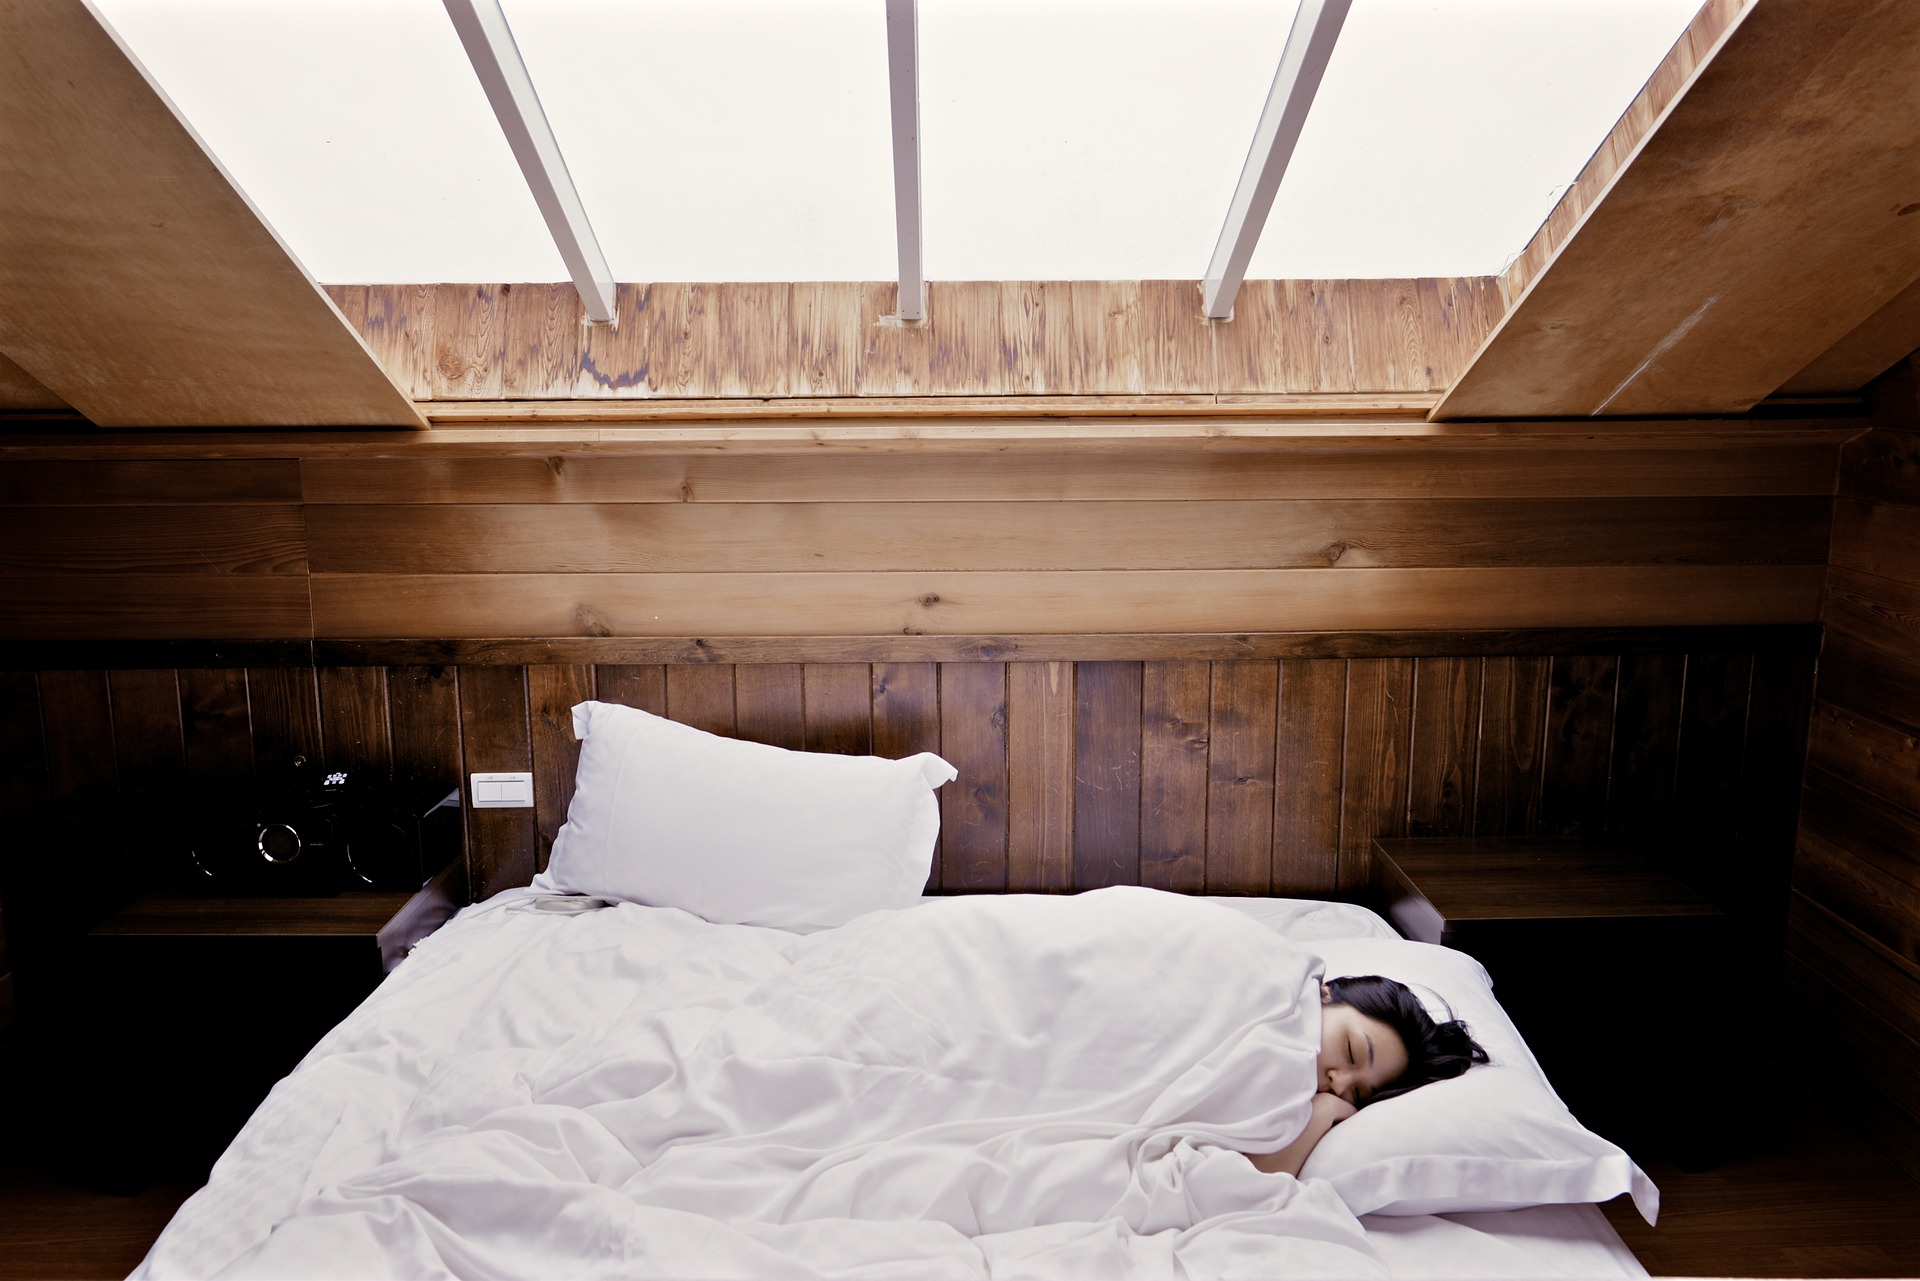 Getting proper sleep will help to improve issues related to physical and mental health.